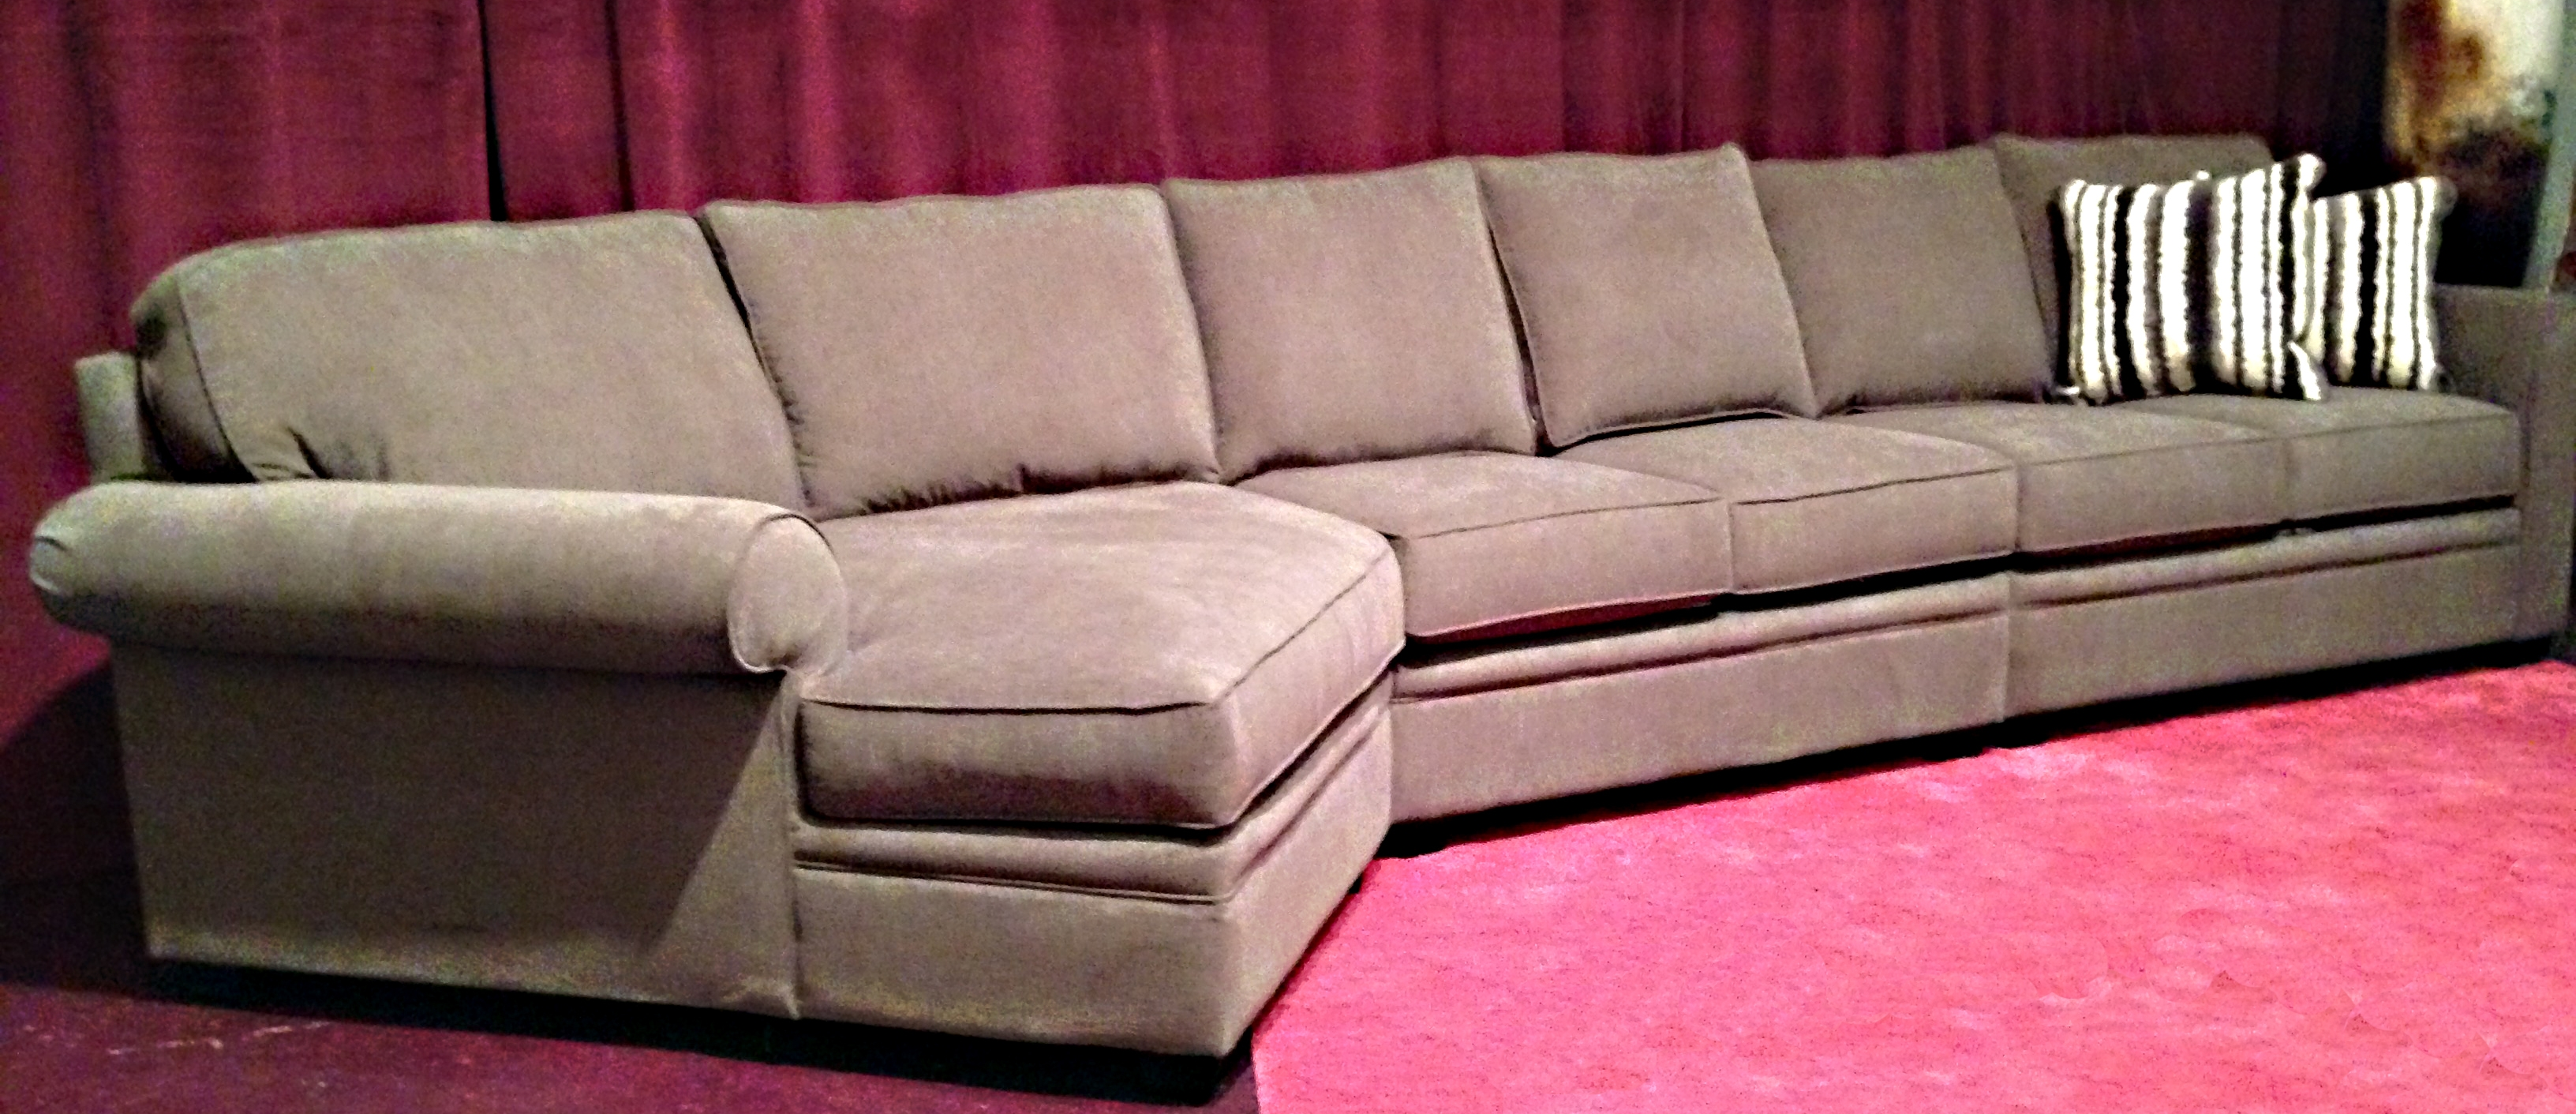 Berkley Sectional Customized Extra Long Sofa Plus Cuddler Intended For Customized Sofas (Image 2 of 15)